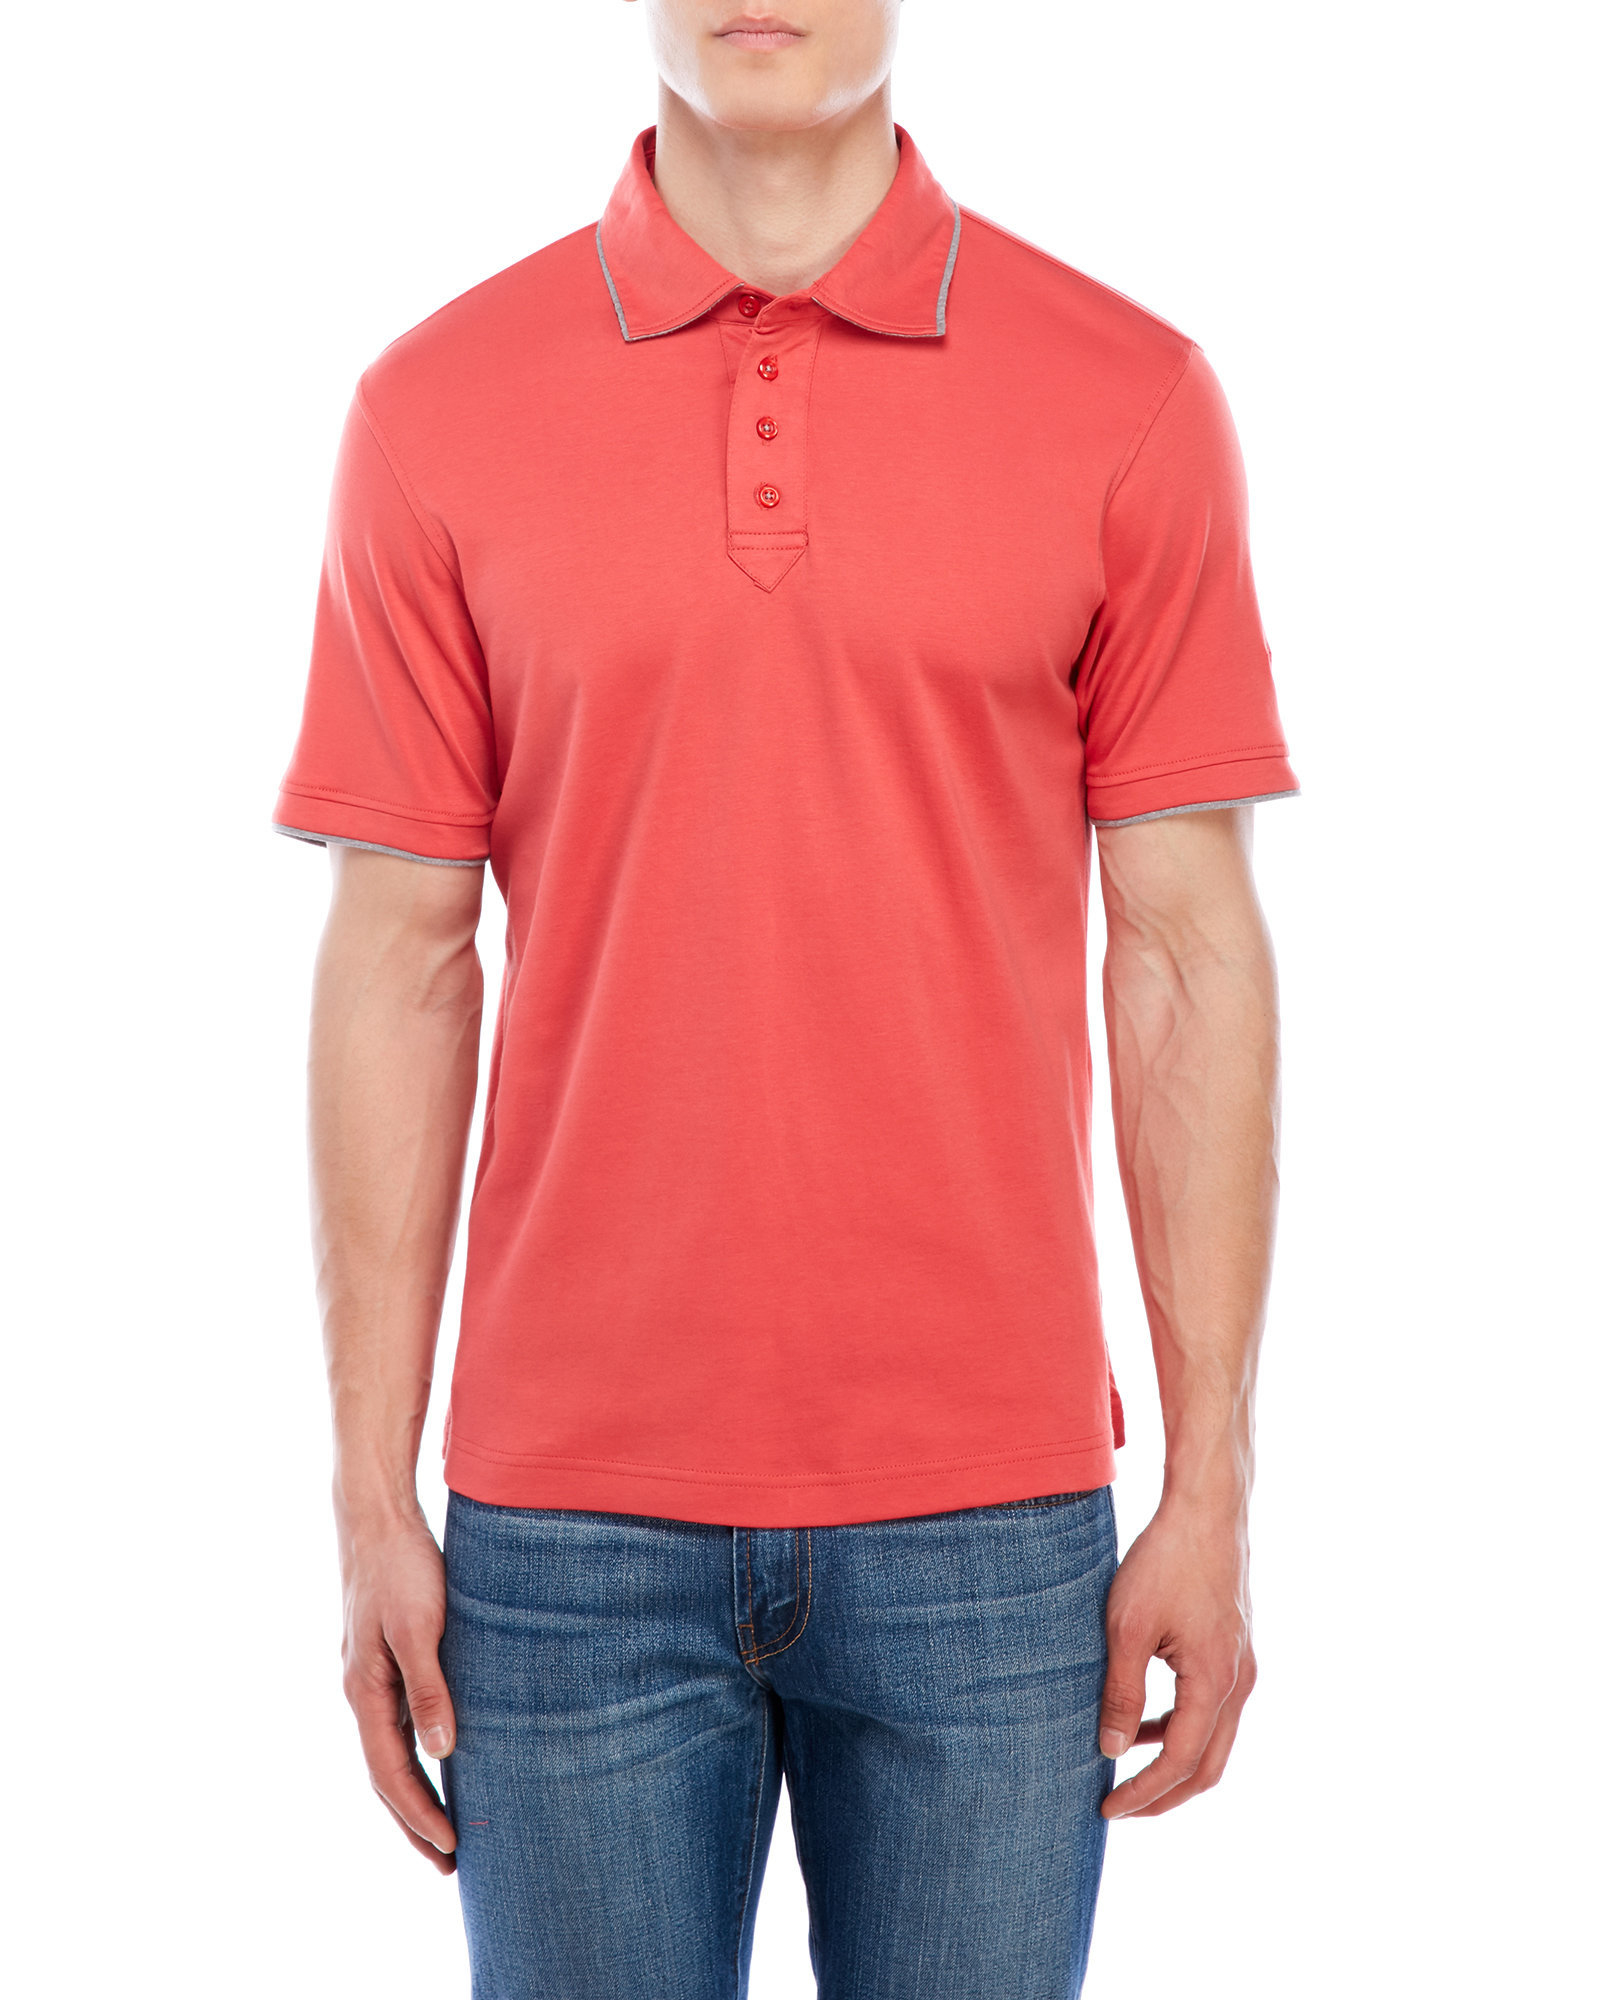 English Laundry Pima Polo Shirt In Red For Men Lyst